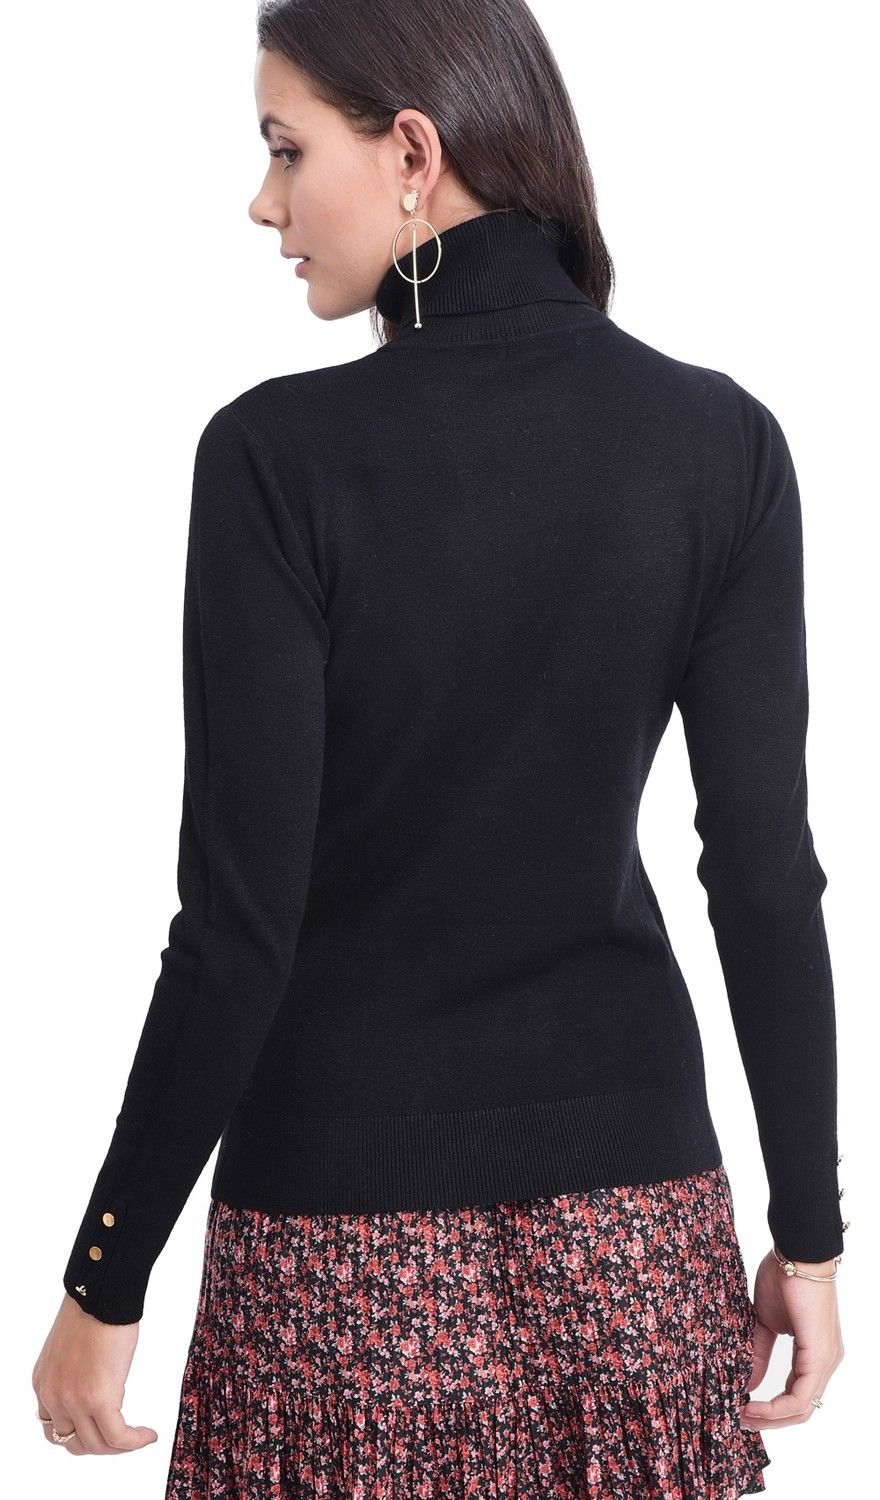 Assuili Roll Neck Sweater with Buttoned Sleeves in Black